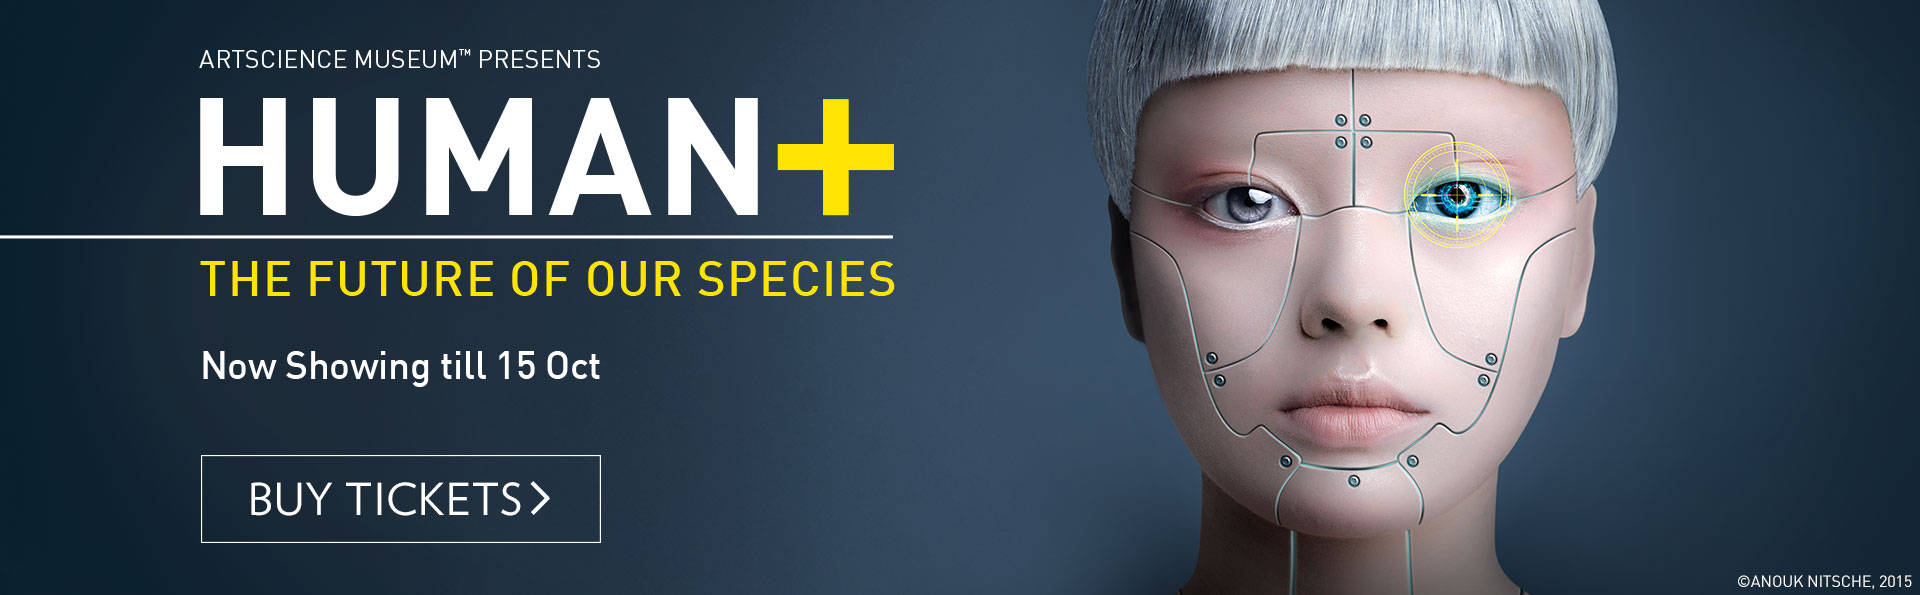 HUMAN + THE FUTURE OF OUR SPECIES